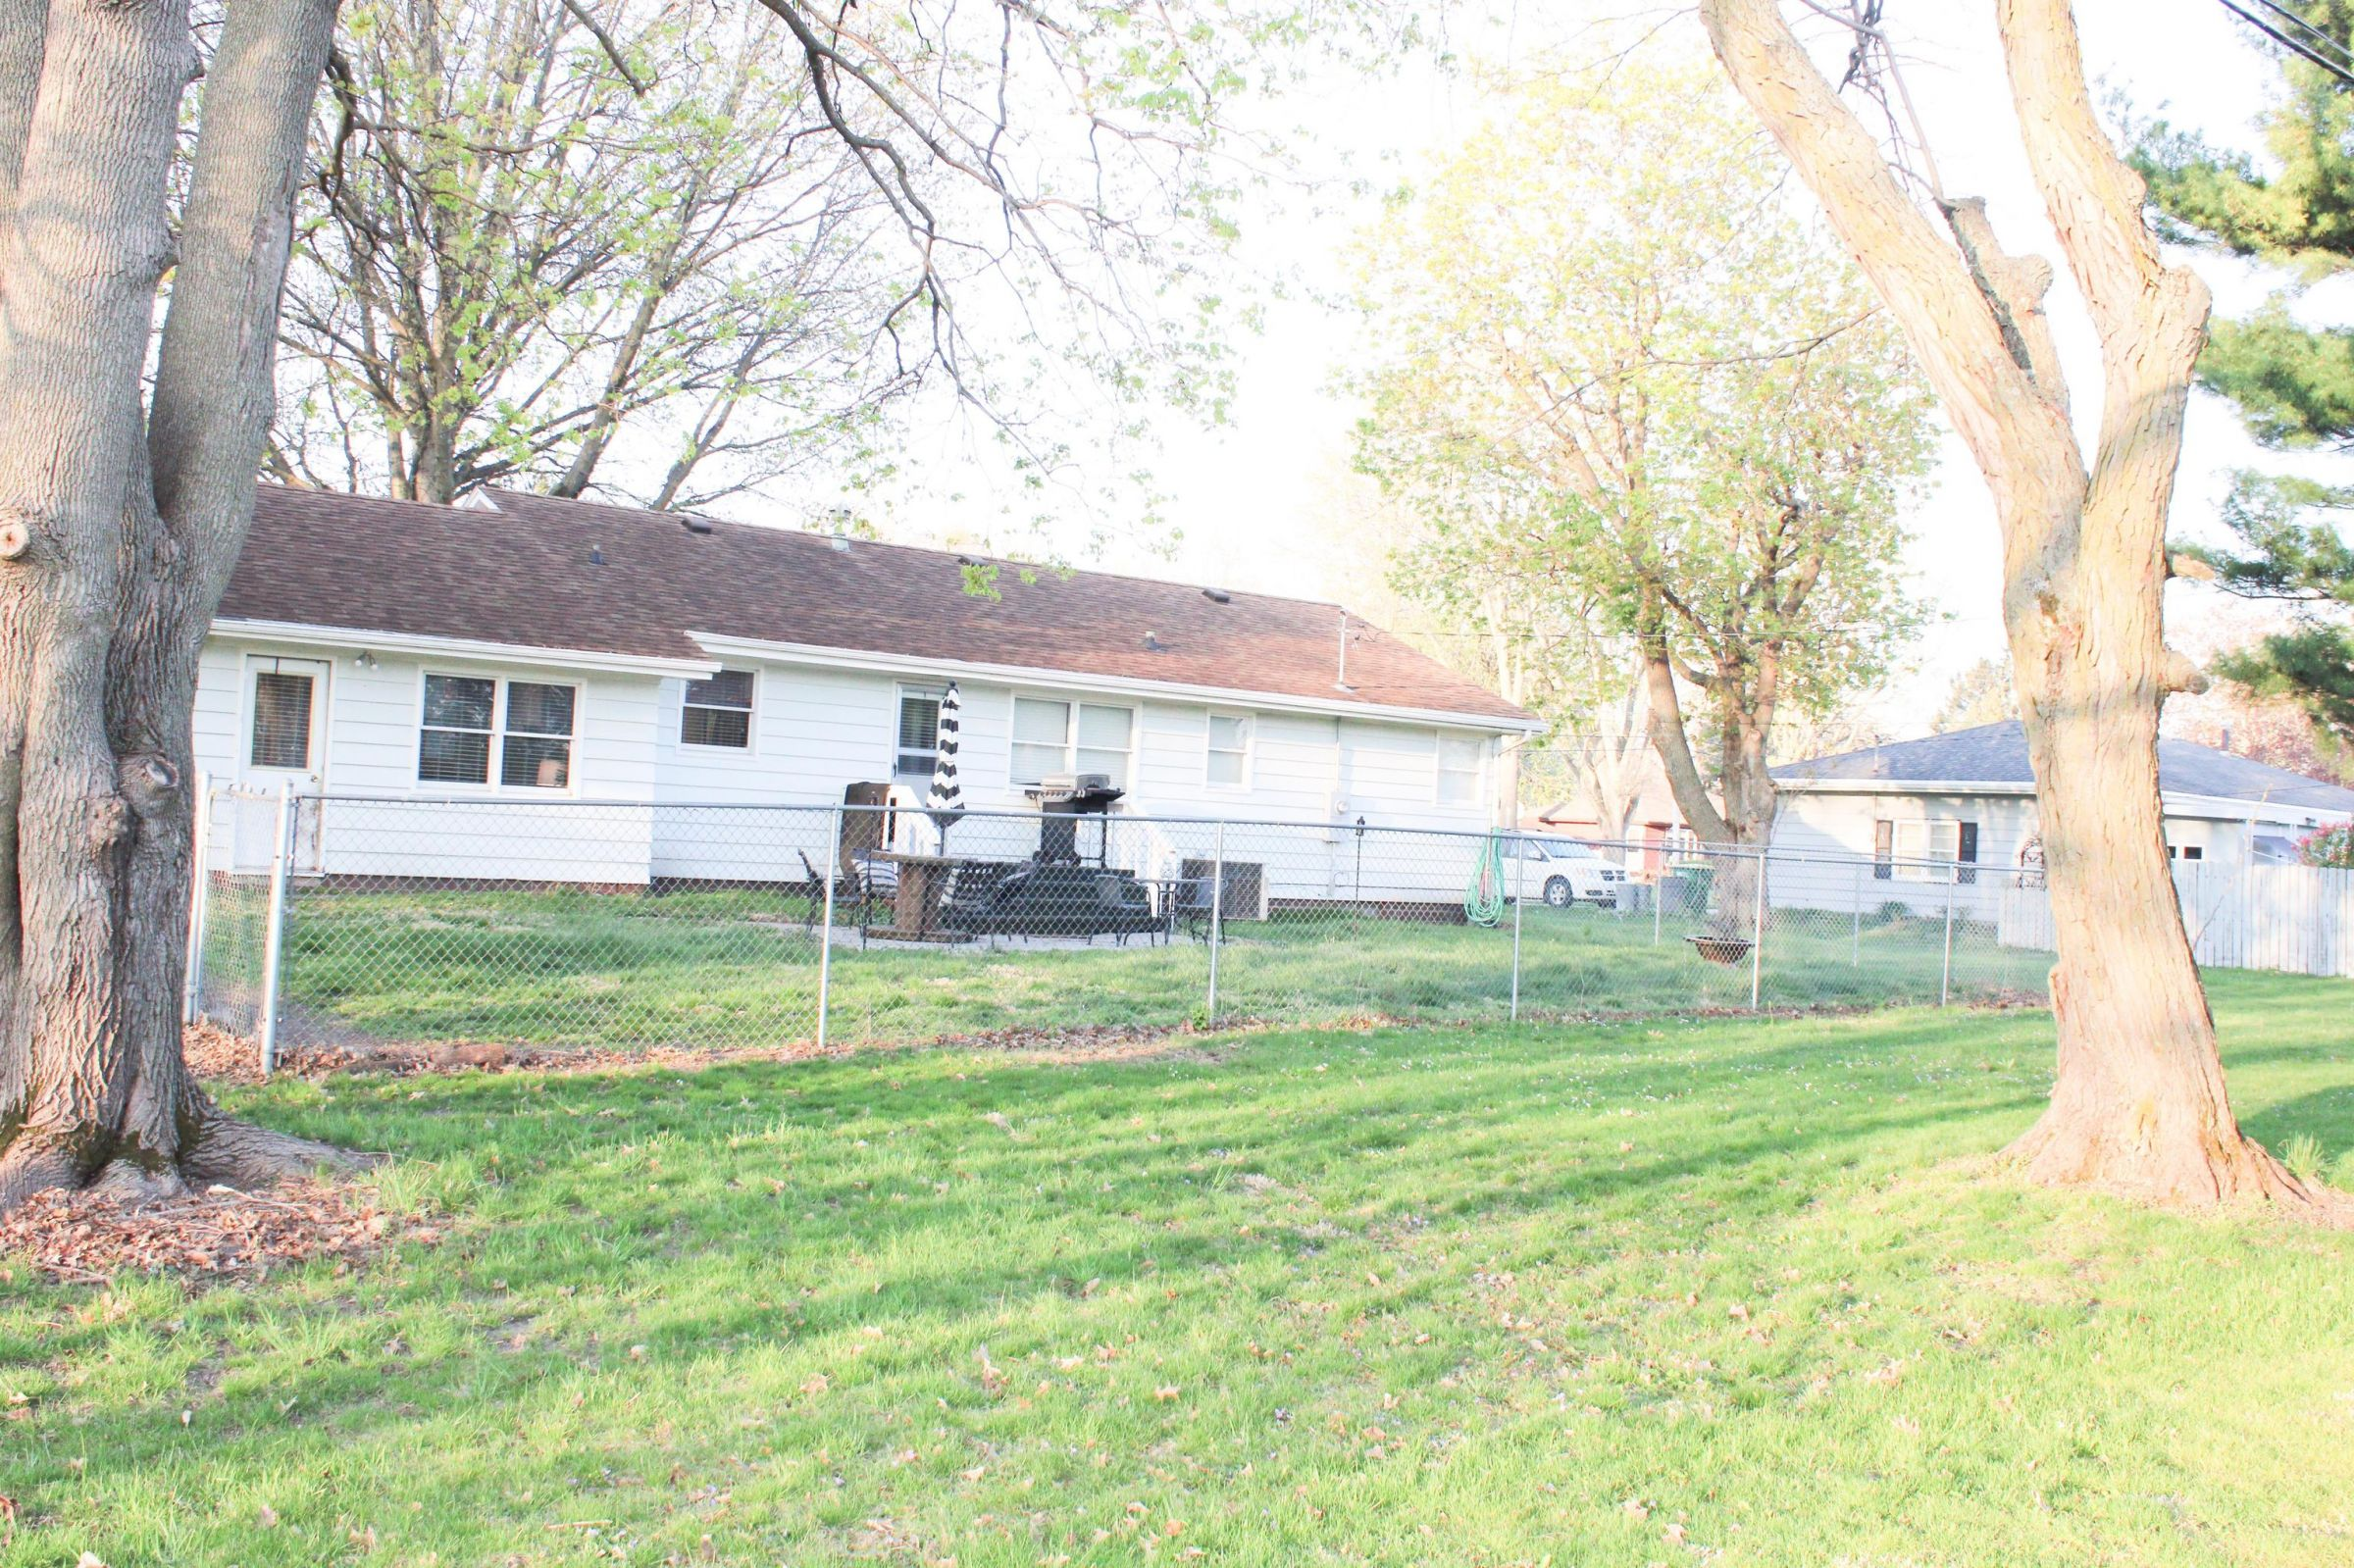 residential-union-county-iowa-0-acres-listing-number-15503-1-2021-04-29-151928.jpg